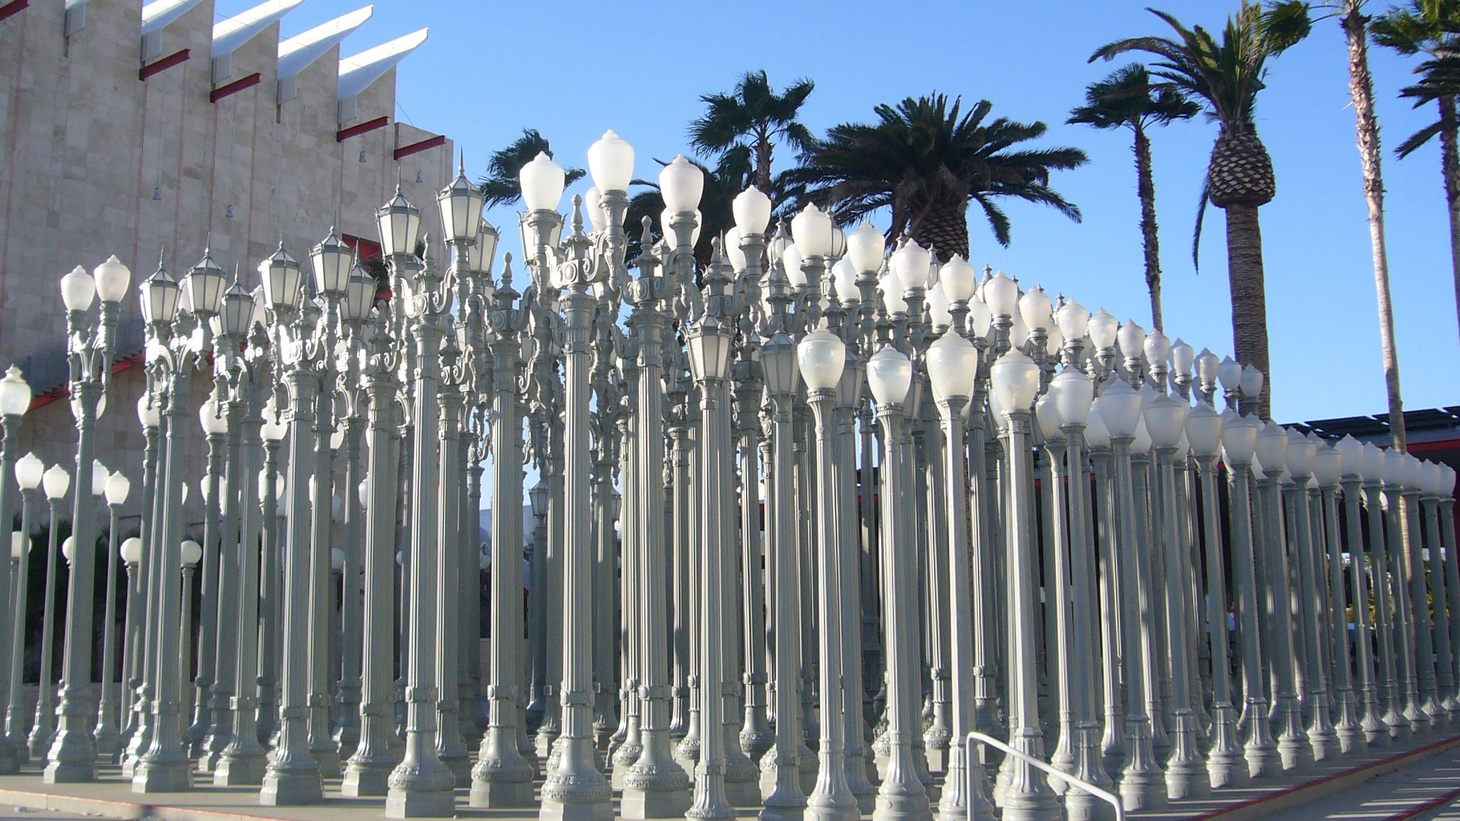 """Los Angeles conceptual artist Chris Burden died over the weekend in his Topanga home. He was 69. Burden is best known for his piece """"Urban Light,"""" the collection of street lights in front of LACMA that look like the Parthenon. We look back on his life and work."""